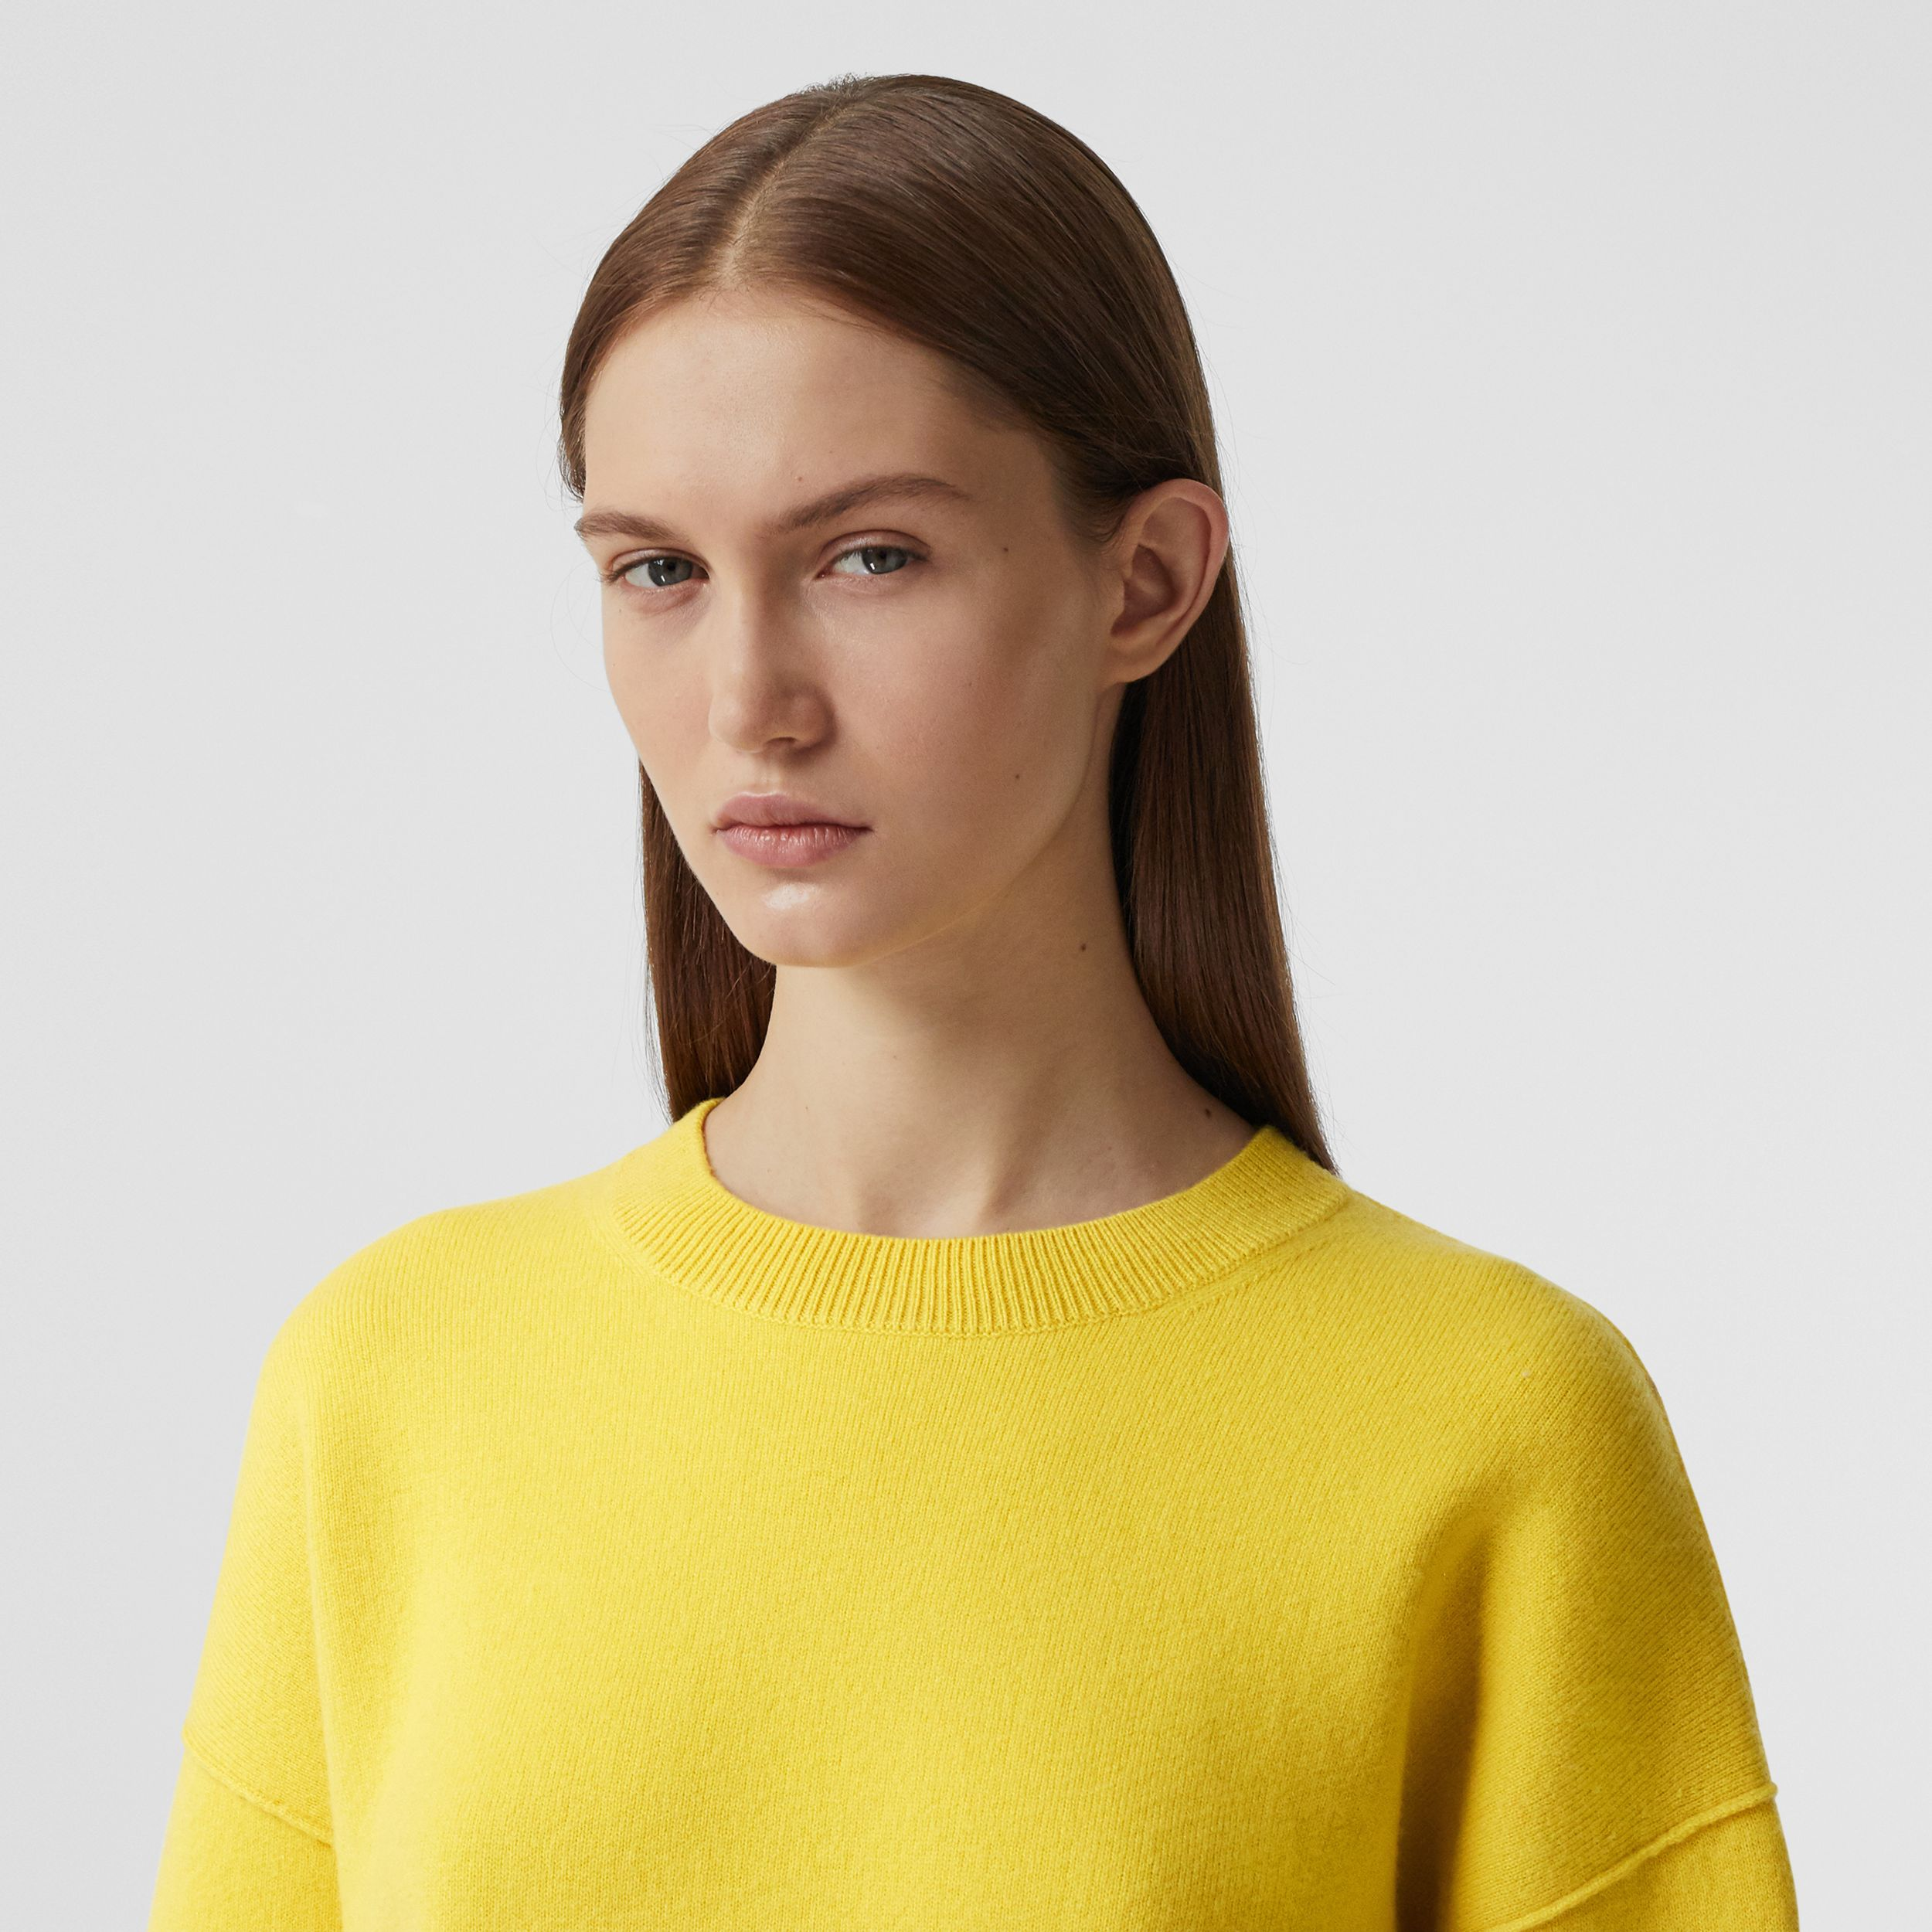 Monogram Motif Cashmere Blend Sweater in Bright Yellow - Women | Burberry - 2